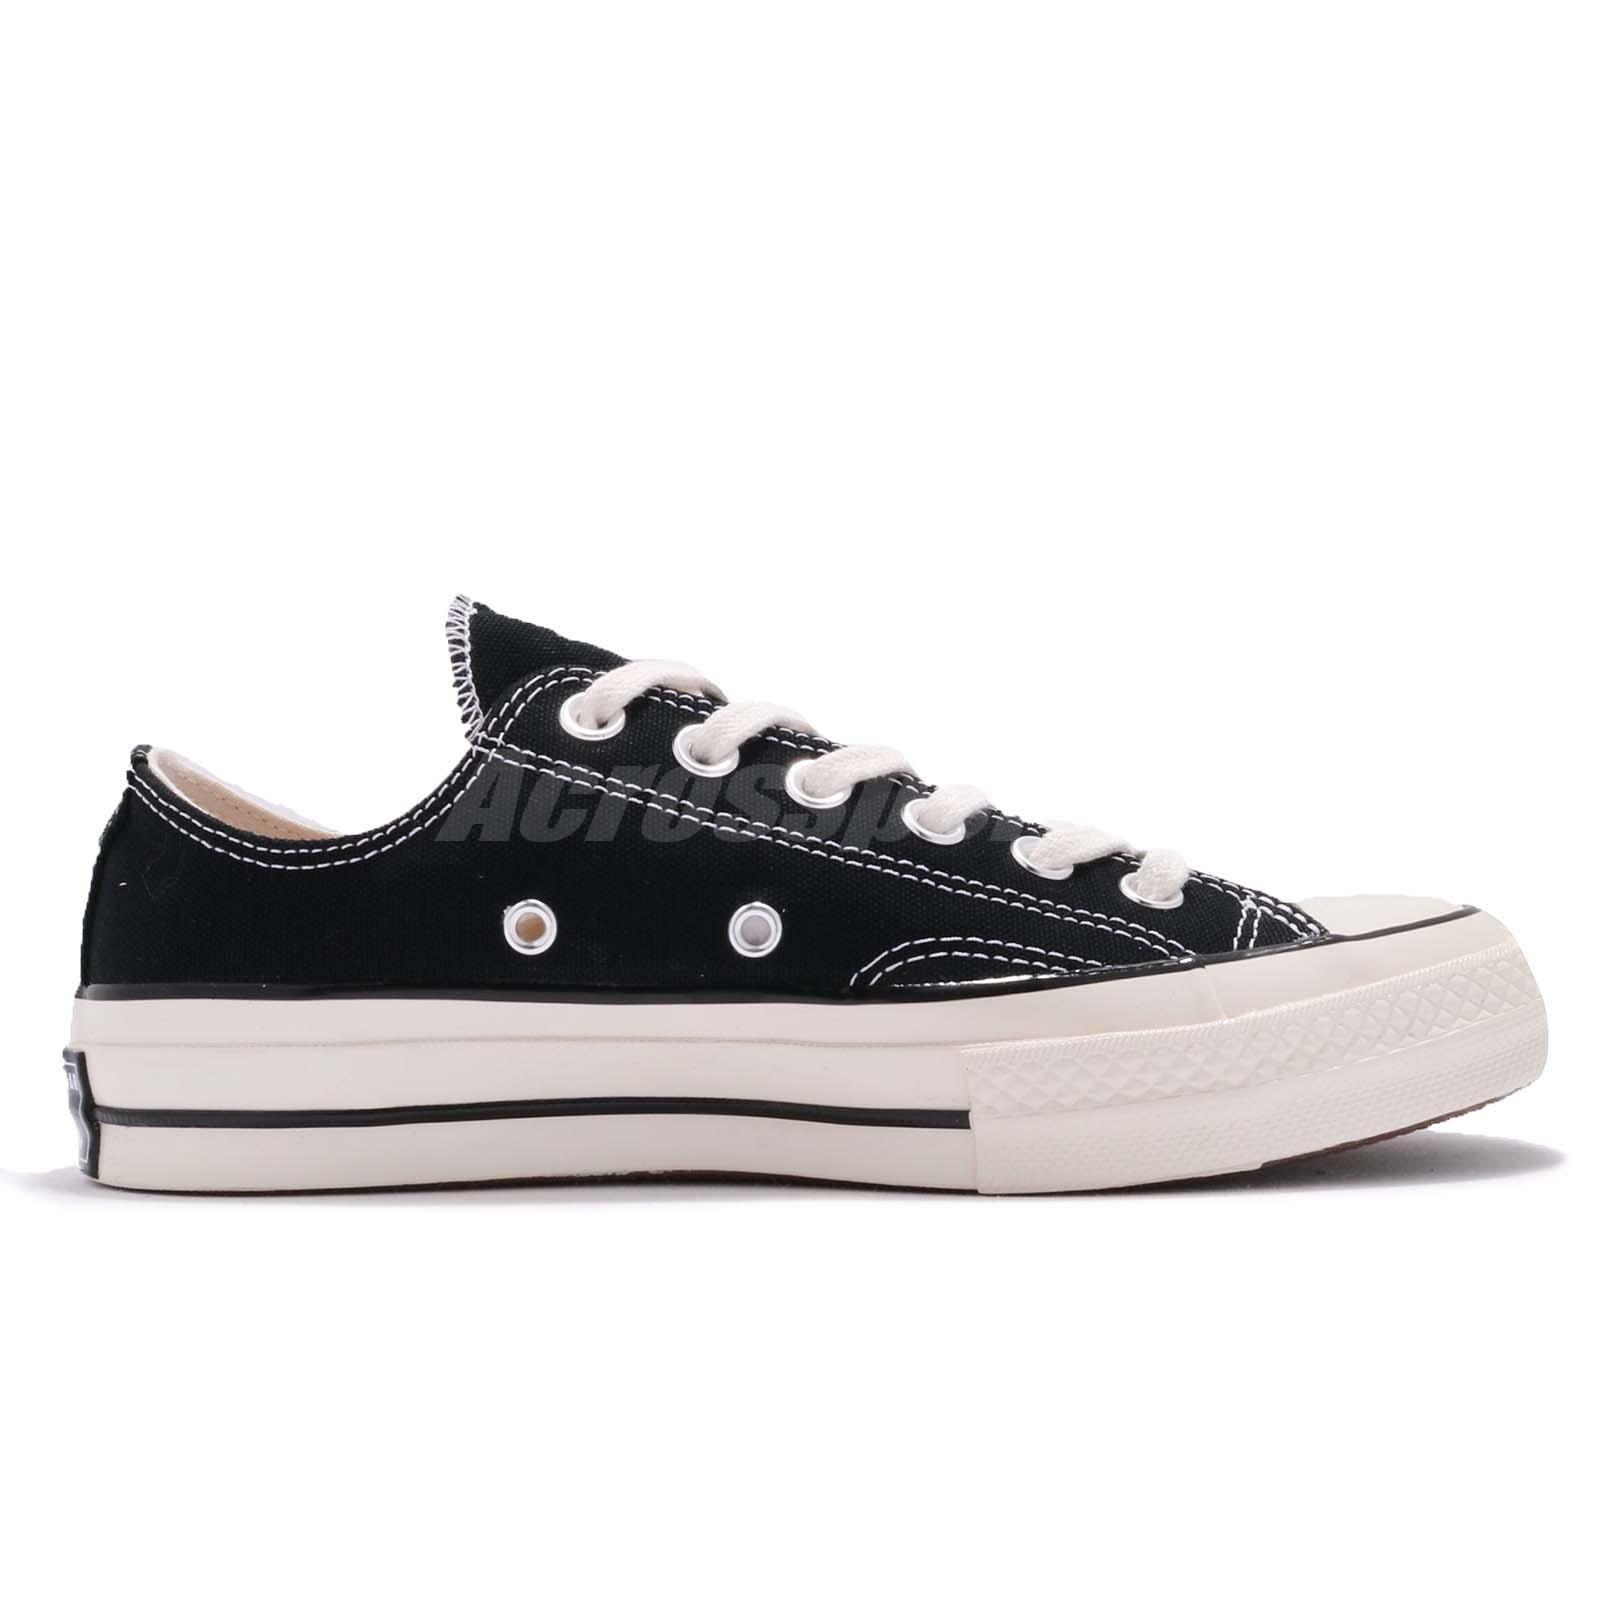 Converse First String Chuck Taylor All Star 70 1970 Low